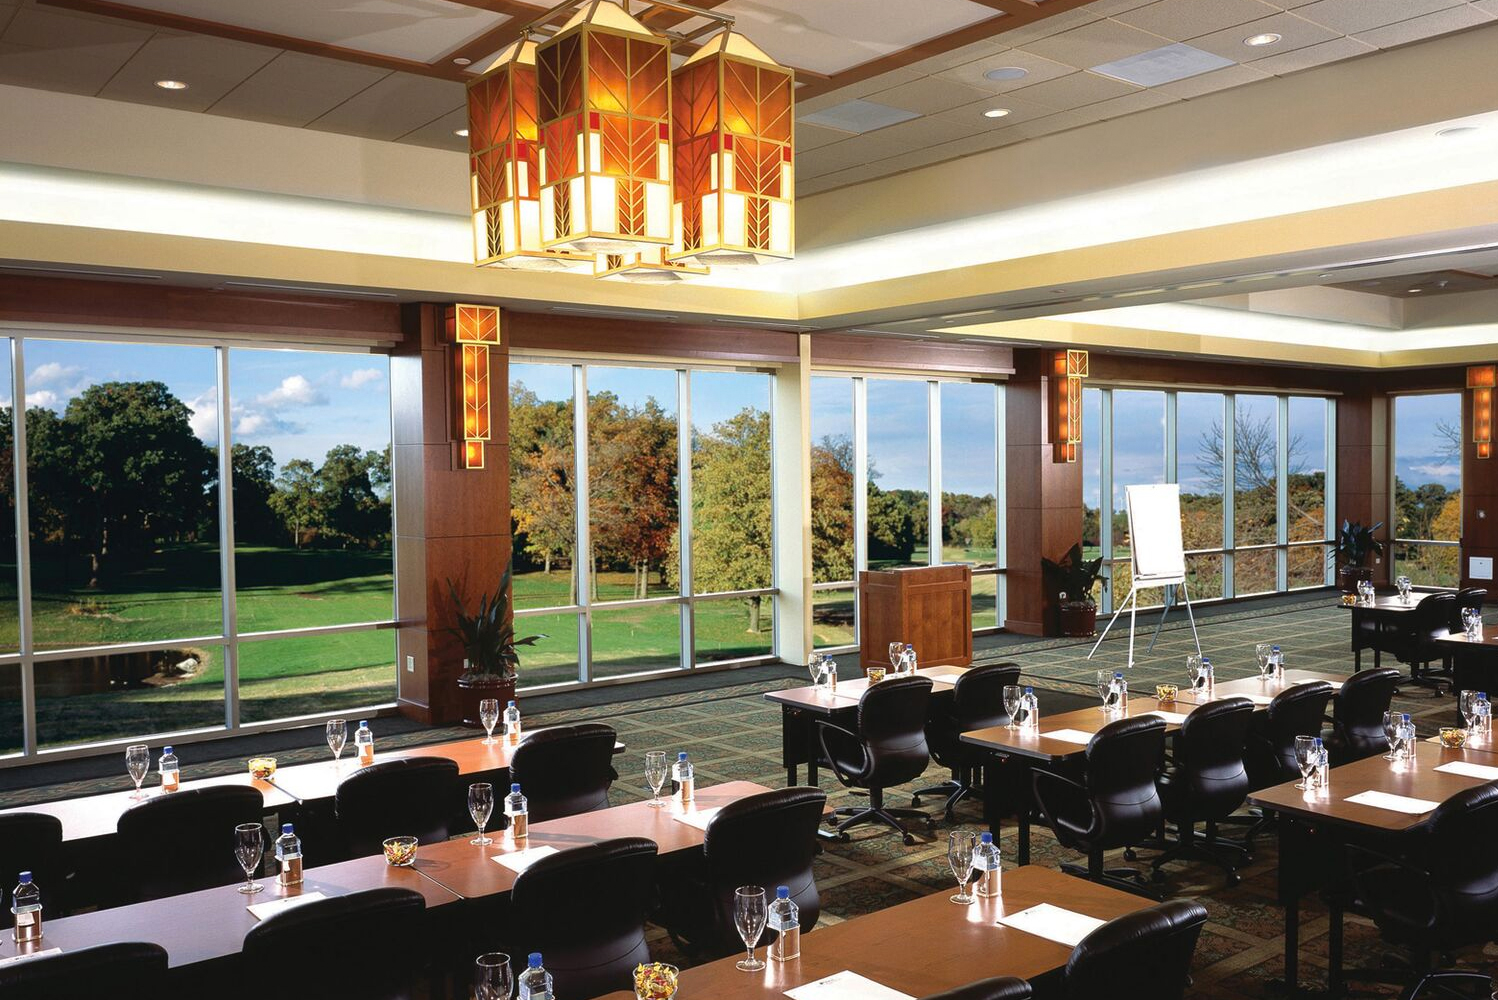 For events, the property has 37,000 square feet of meeting space.